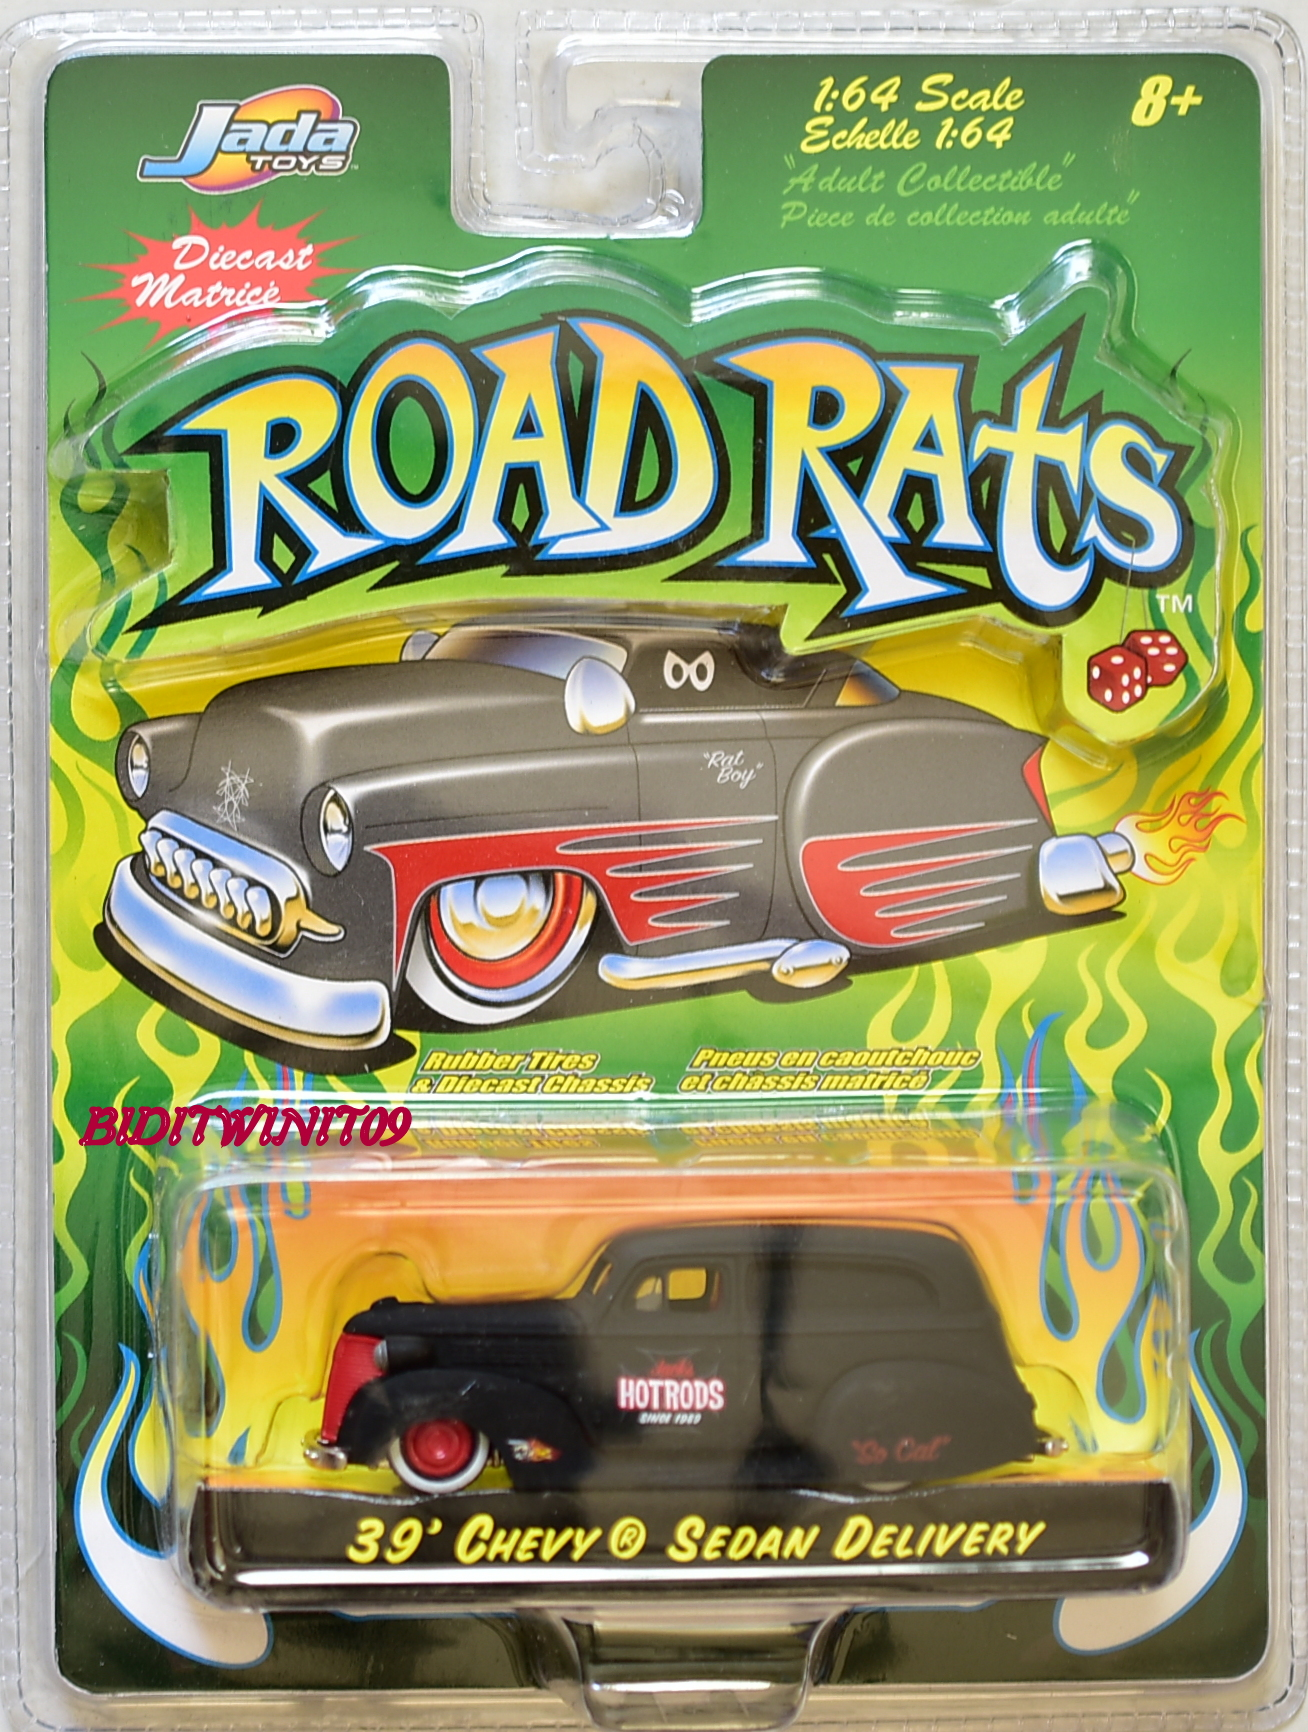 JADA TOYS ROAD RATS DIE CAST CAR 1:64 39' CHEVY SEDAN DELIVERY BLACK E+